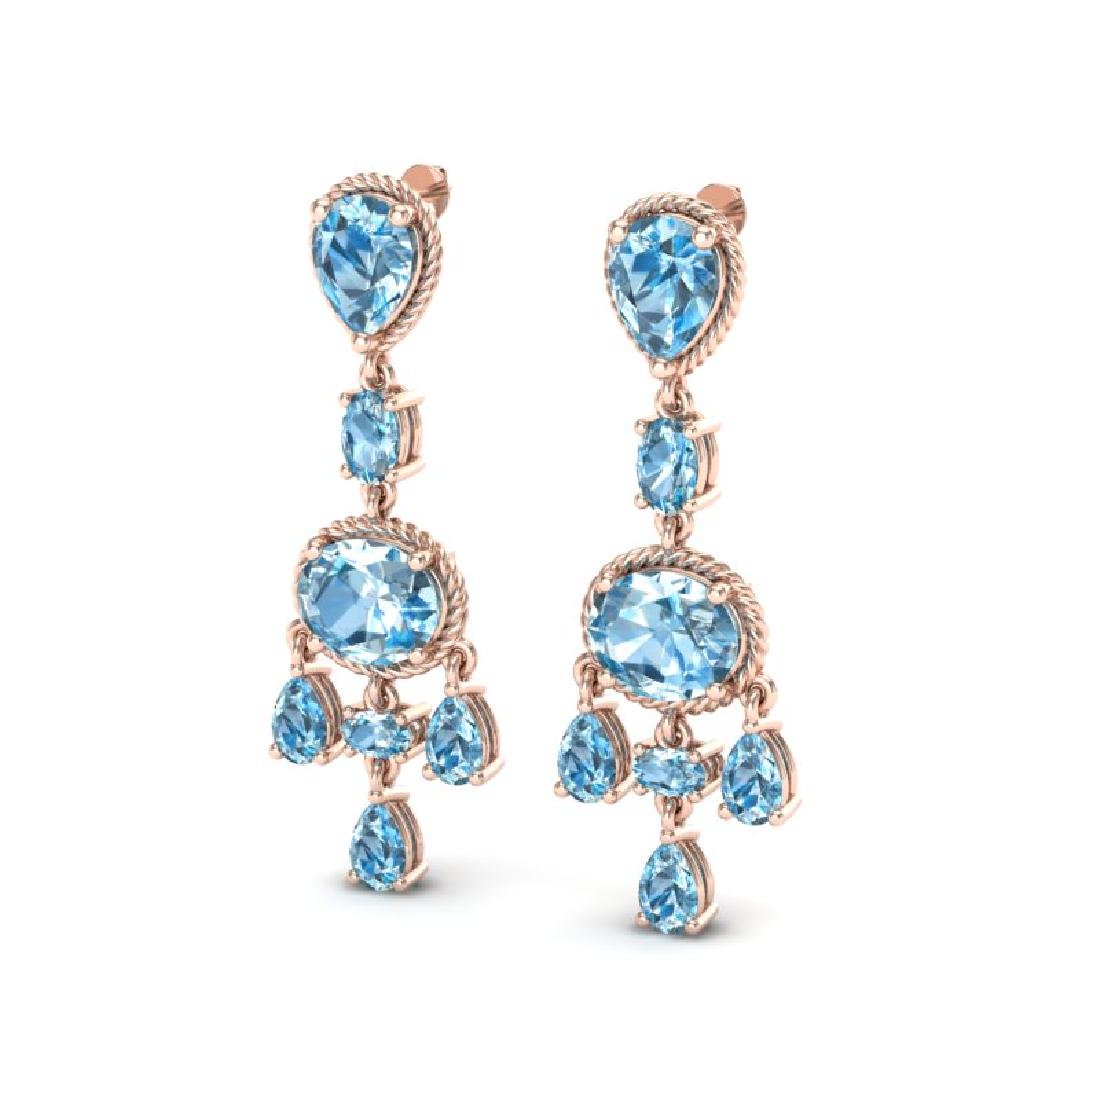 16 CTW Sky Blue Topaz Earrings Designer Vintage 10K